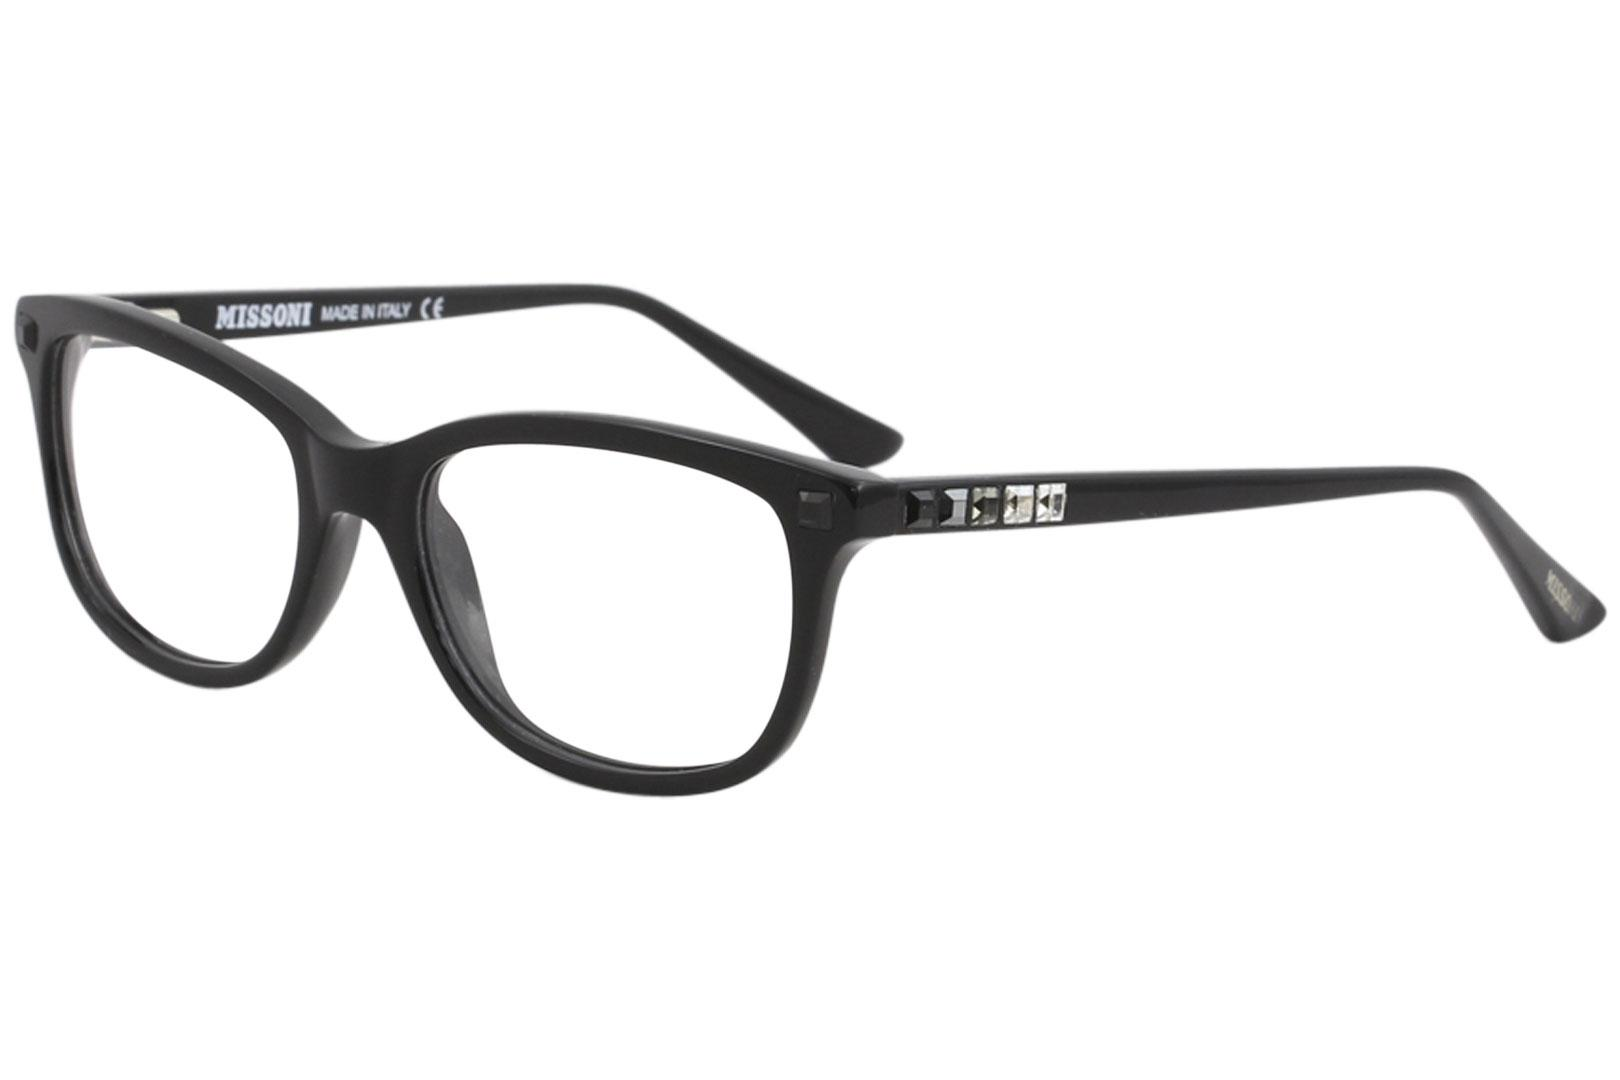 Image of Missoni Women's Eyeglasses MI283V MI/283/V Full Rim Optical Frame - Black w/Crystal Accents   03 - Lens 52 Bridge 17 Temple 135mm